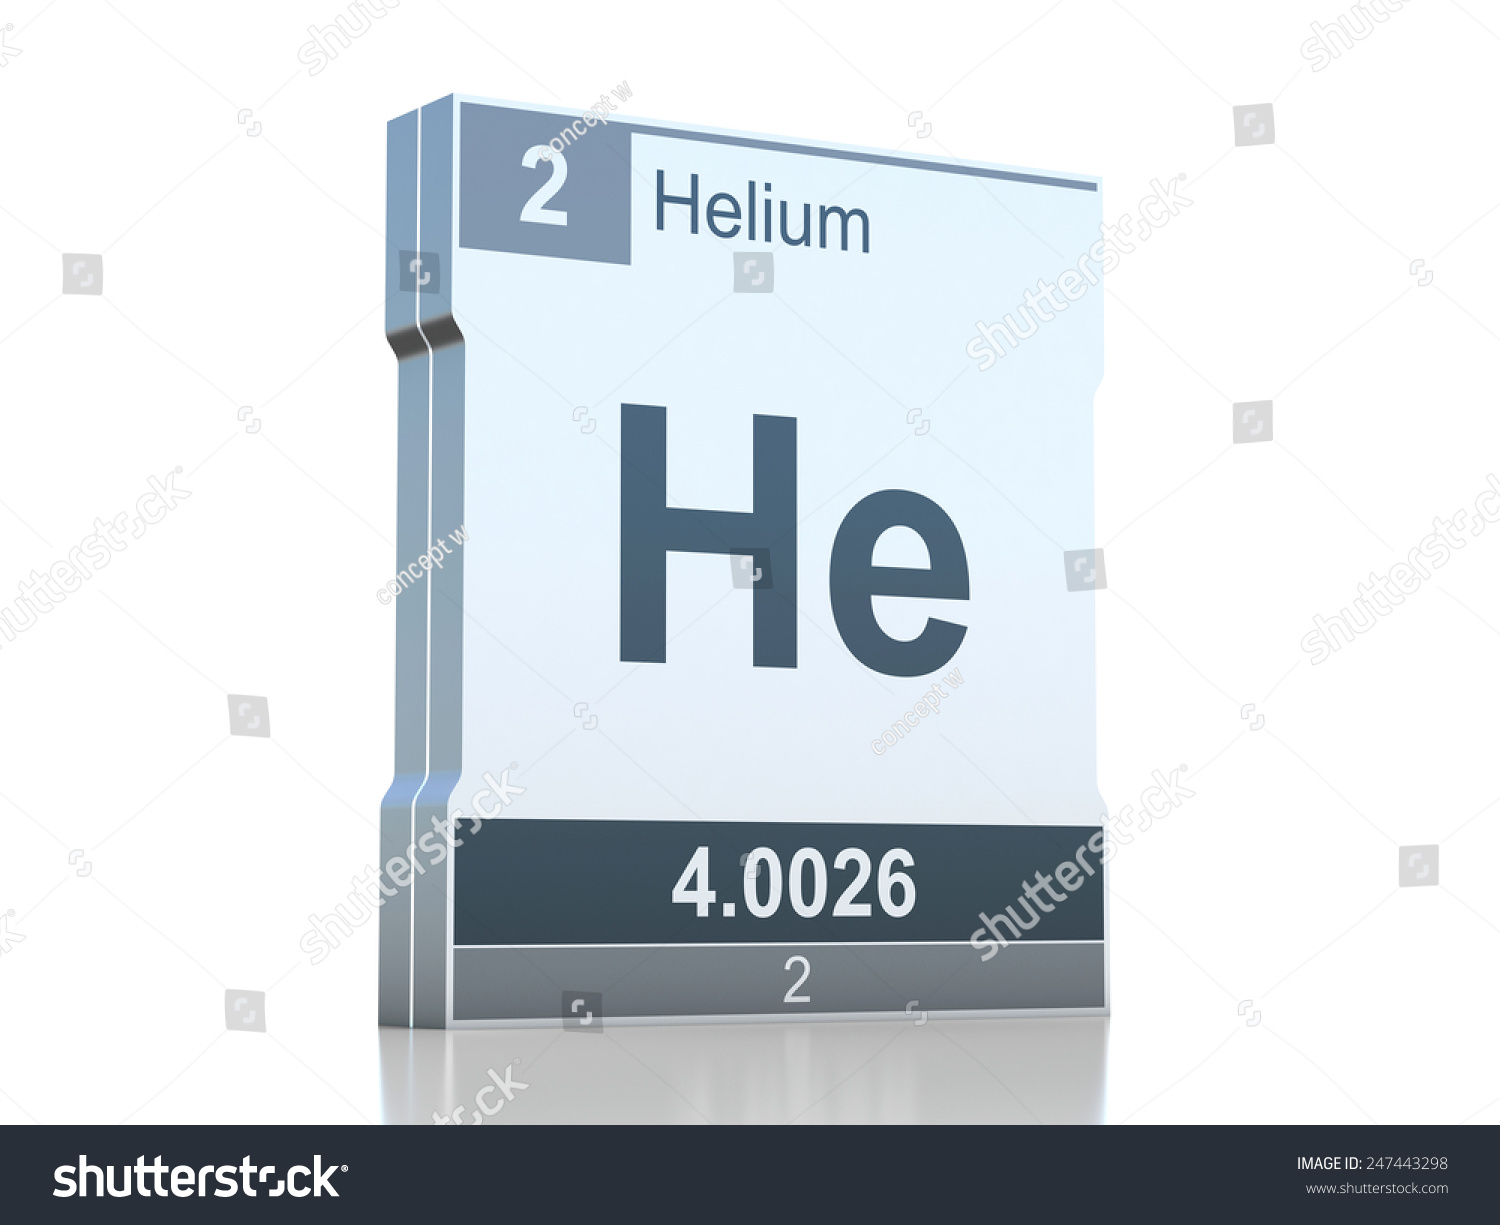 Helium symbol element periodic table stock illustration 247443298 helium symbol element from the periodic table gamestrikefo Images